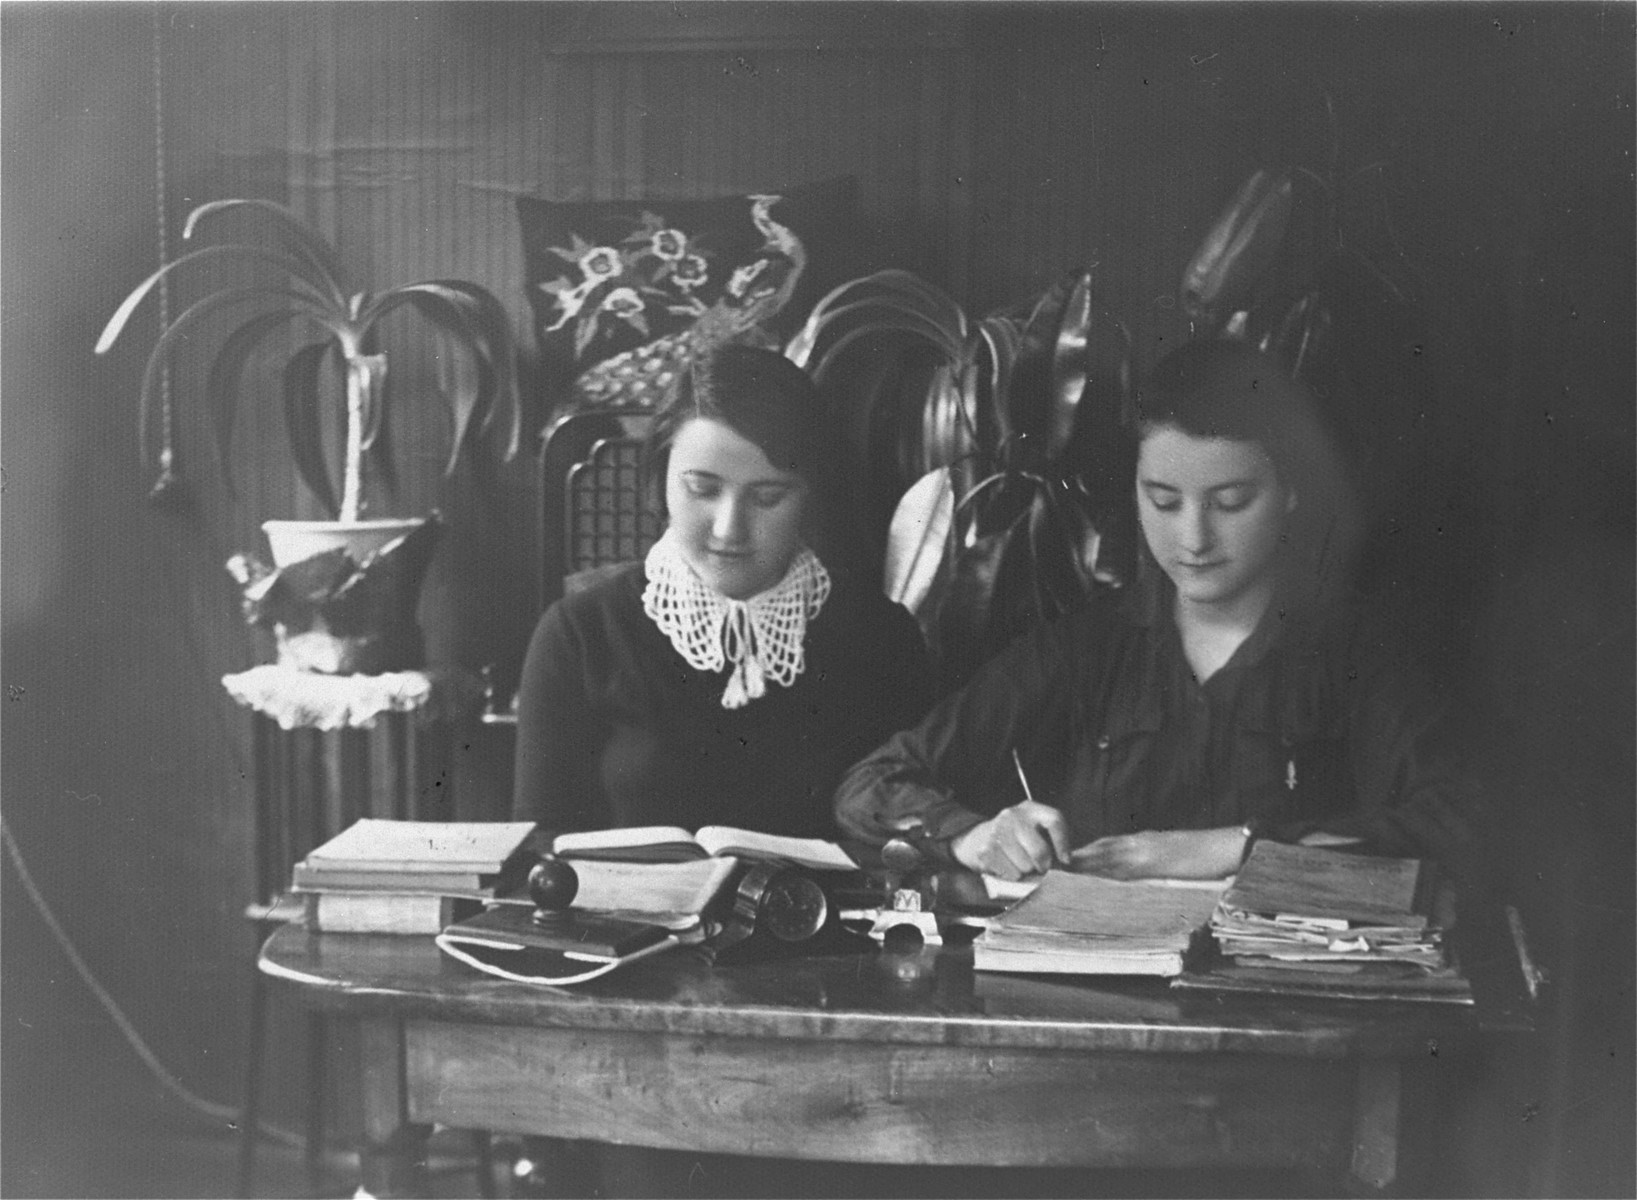 """Two young women, who were members of the kibbutz hachshara Hakovesh, work as secretaries in an office.    They inscribe the photograph to their friend Eliezer Kaplan: """"In memory of the days that we spent together in kibbutz Hakovesh in Taurage..."""""""